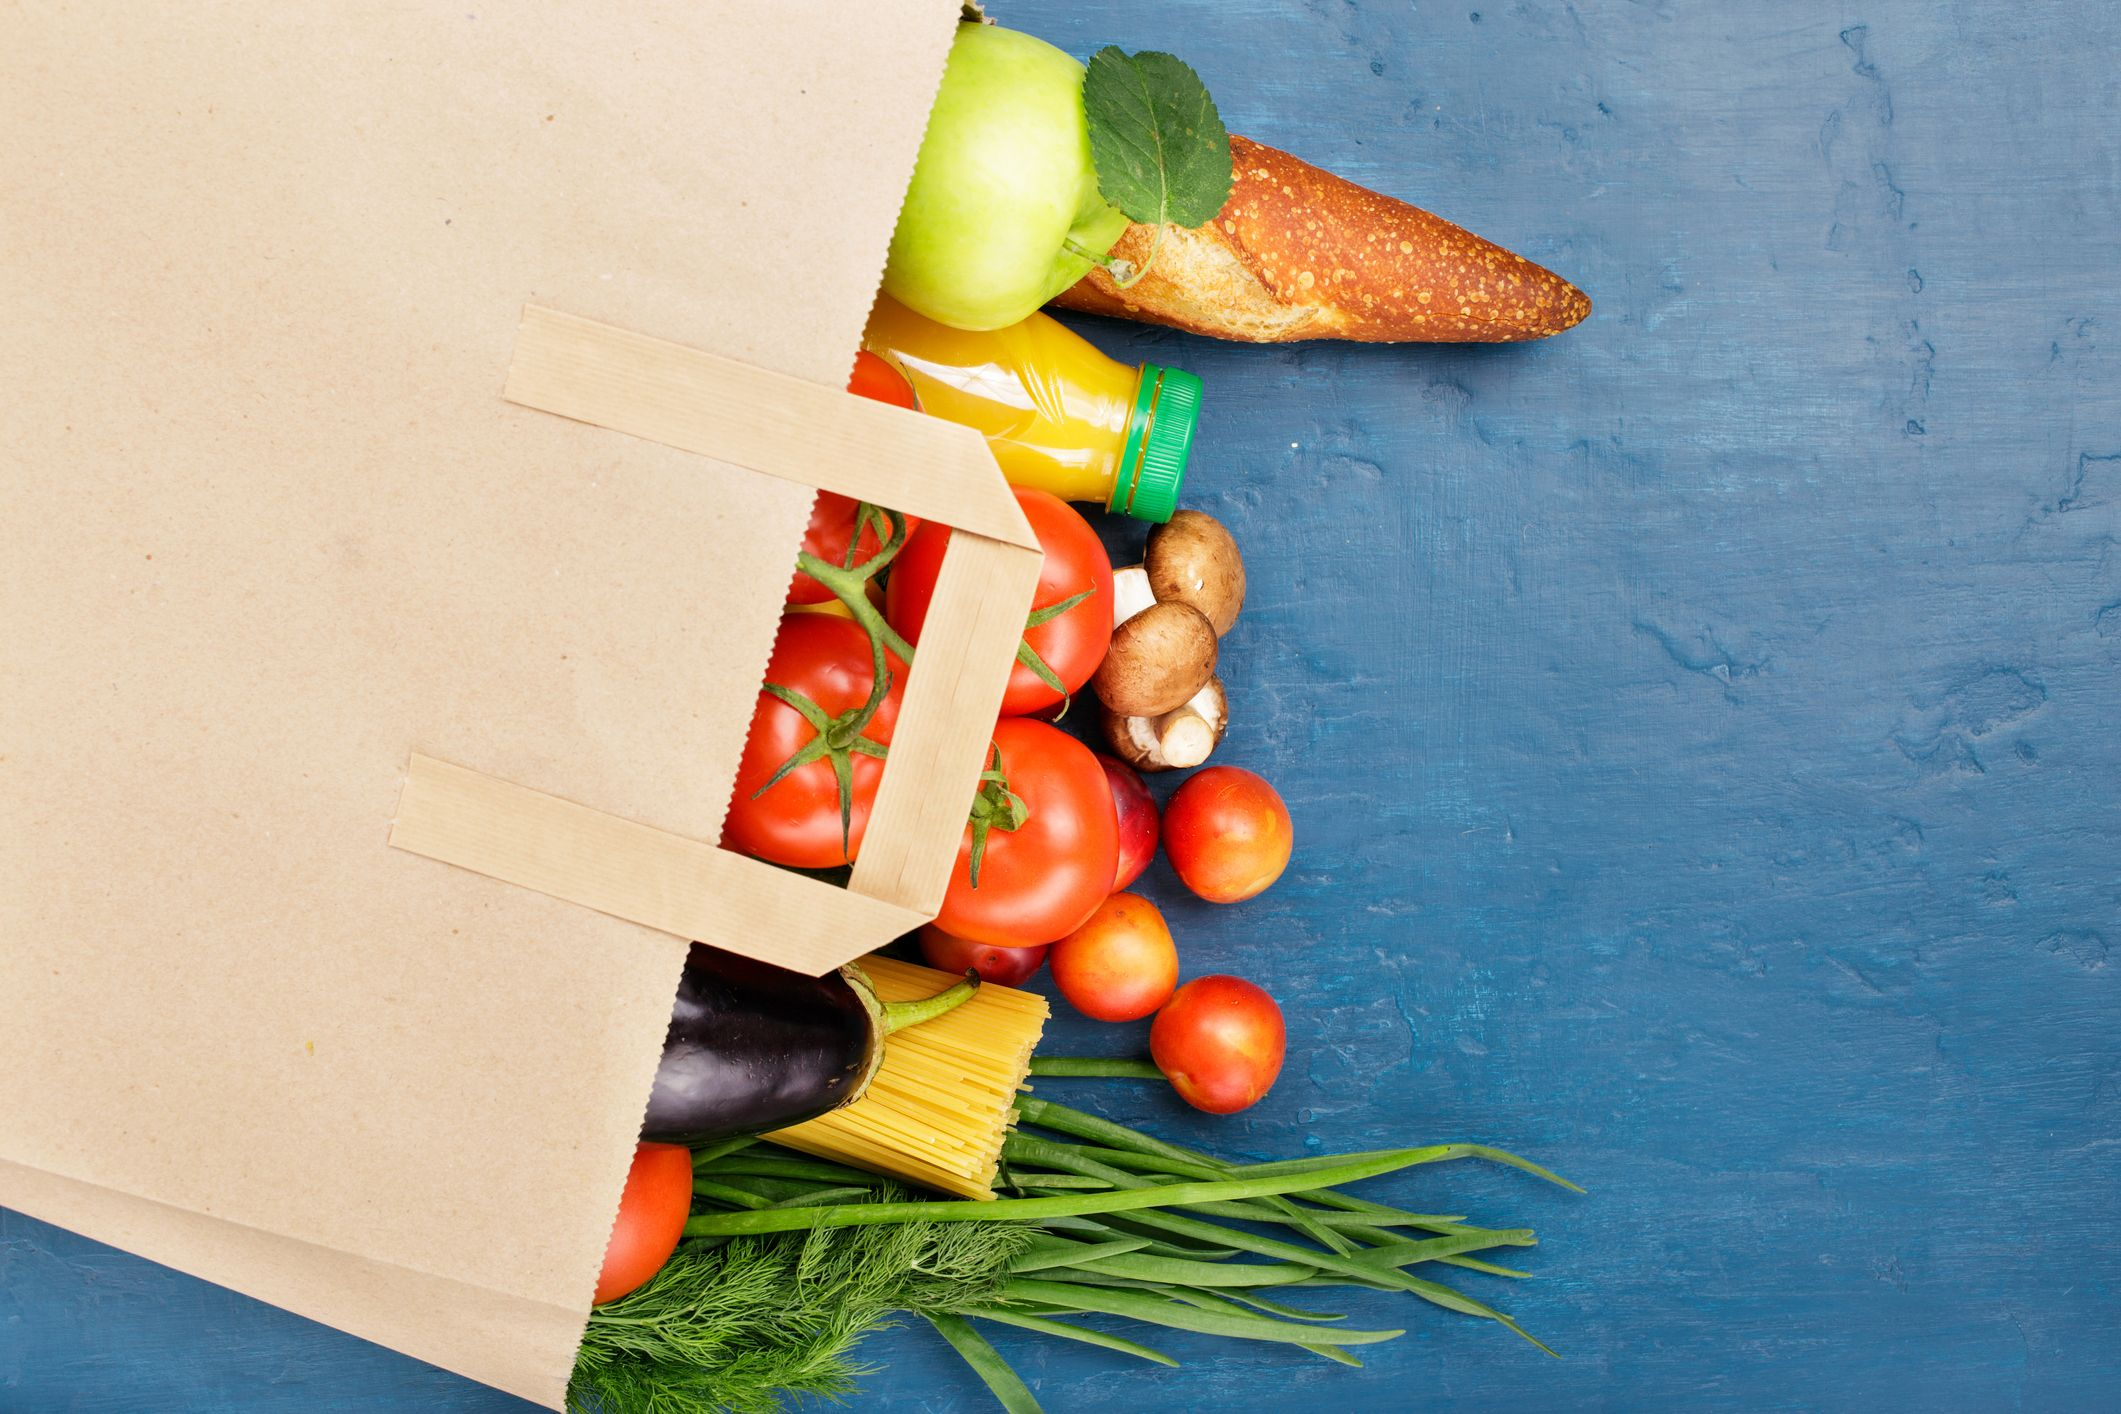 Online Grocery Shopping Services